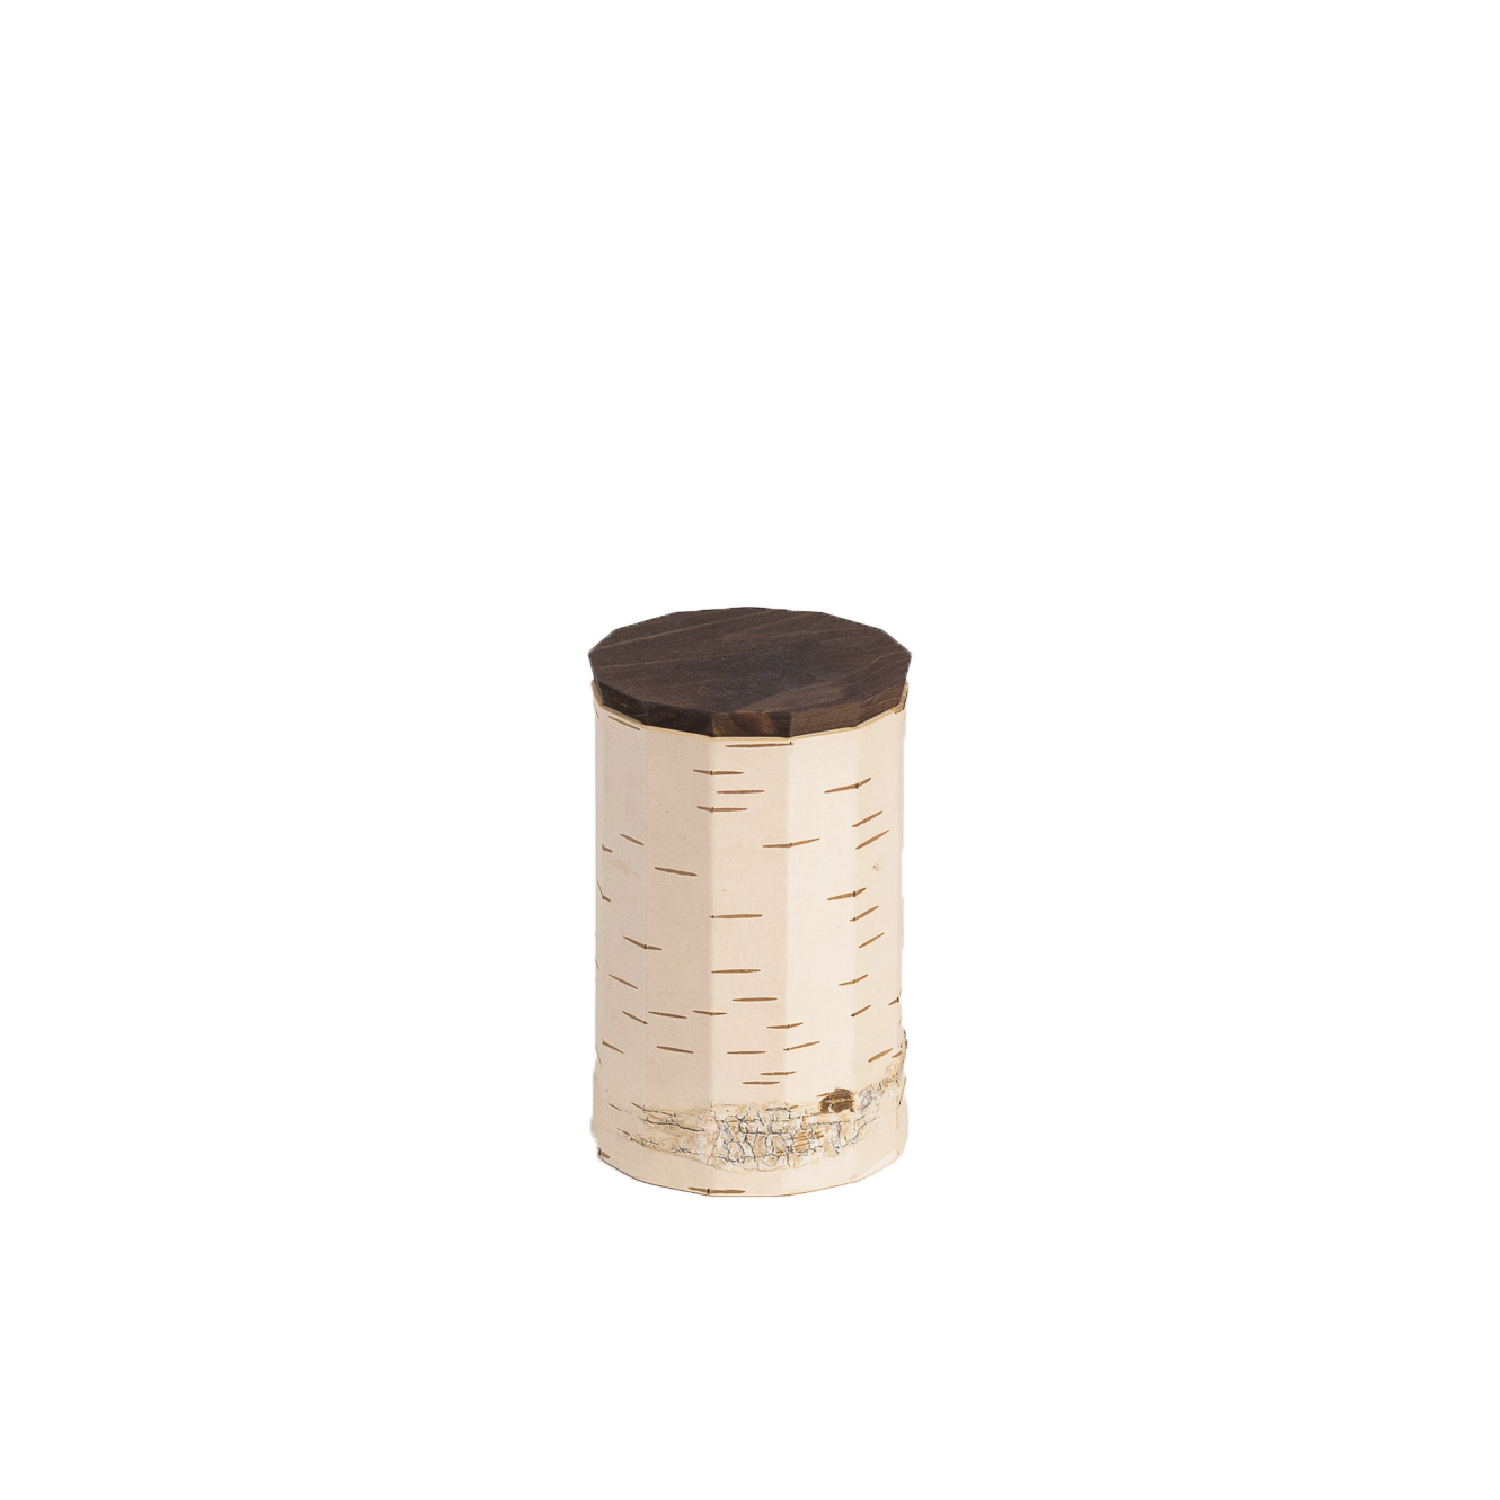 Tuesa Food Container - Antibacterial, insulating, water-resistant and particularly light birch bark containers keep foodstuffs fresh for longer and are incredibly durable while being low maintenance at the same time. The containers are best suited for storing biscuits, cereal, pasta, berries, legumes, and any other loose dry foodstuffs. They are also perfect for the aroma-sealing storage of tea, coffee, spices and nuts.  Tuesa guarantee a non-slip warm surface and a secure grip even when wet – you can even rinse them with water if needed. Birch bark is characterised above all by its robustness and extreme longevity, whilst not requiring any maintenance. Products made from it bring joy for a long time and can be passed down through generations as heirlooms.  Tuesa T13 has a capacity of, for example, 250g coffee, 550g sugar and 250g fine oatmeal  Tuesa TN13 has a capacity of, for example, 450g sugar and 220g fine oatmeal.  Tuesa T9 has a capacity of, for example, 350g coffee, 600g sugar and 300g fine oatmeal.  Tuesa TN9 has a capacity of, for example, 500g sugar and 250g fine oatmeal.  Tuesa T7 has a Capacity up to 1.5 kg spaghetti.  Birch bark, pine wood Surface: water-based wood stain, bees wax      | Matter of Stuff